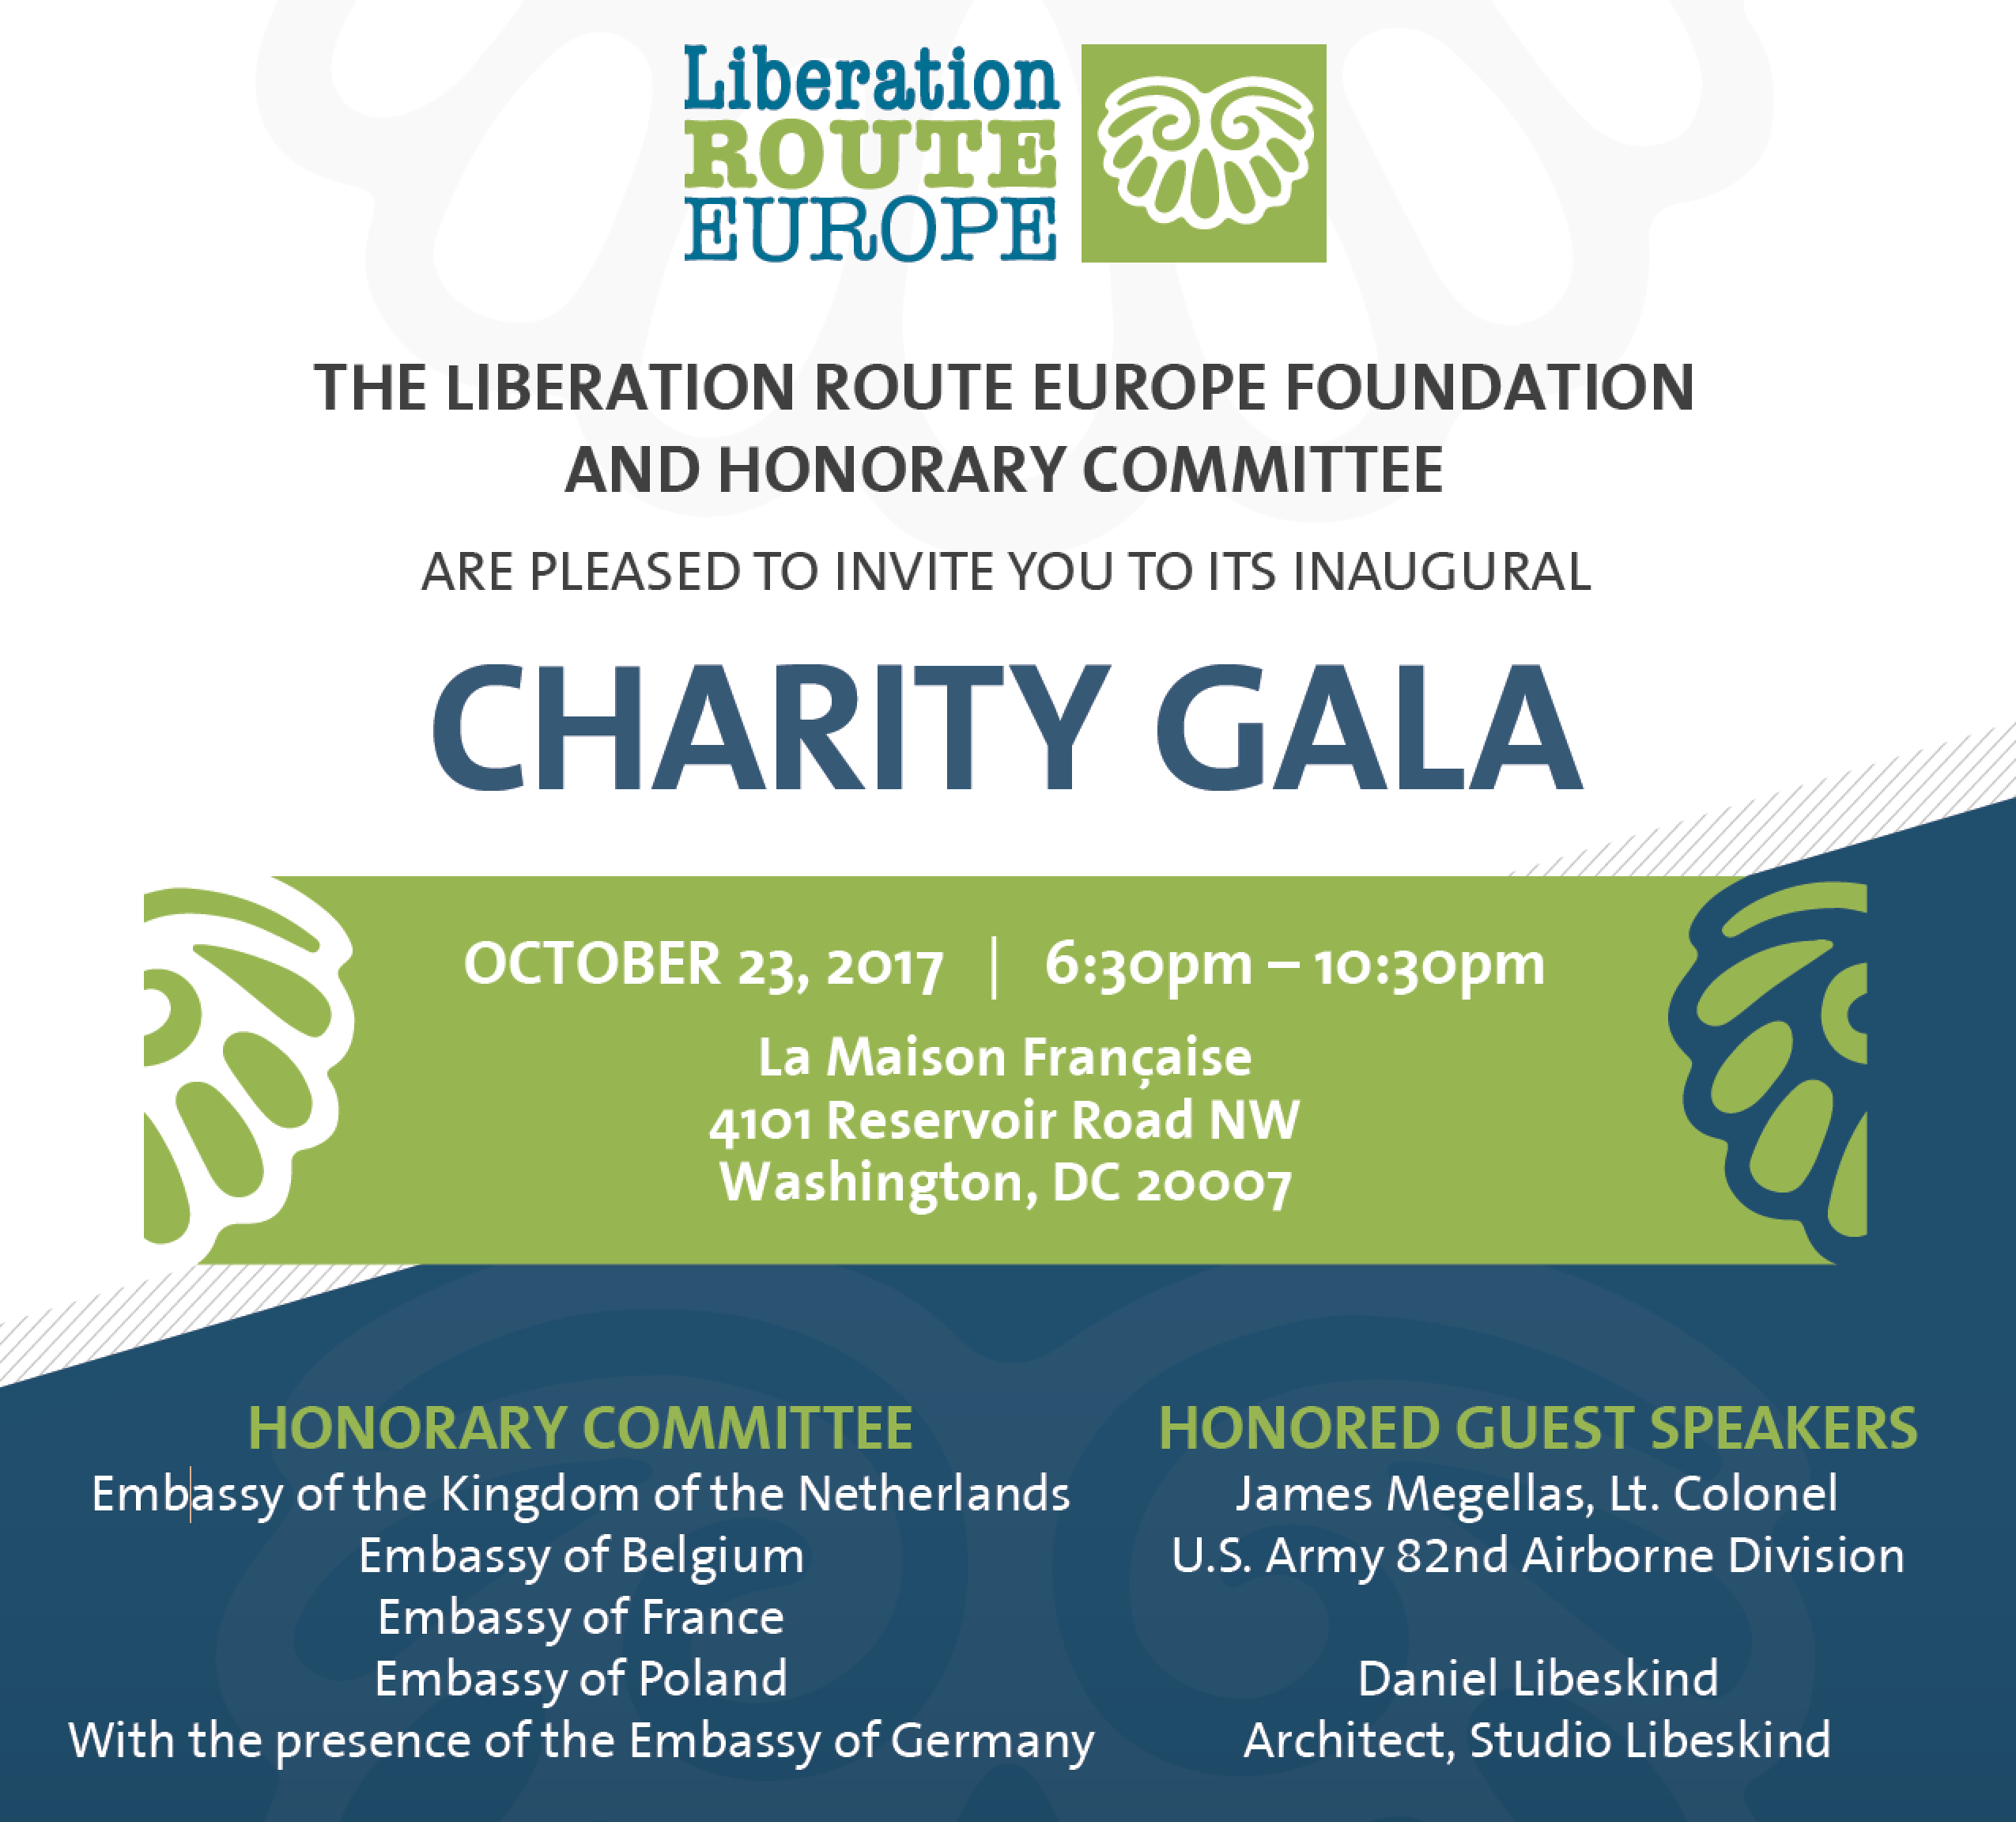 liberation-route-europe